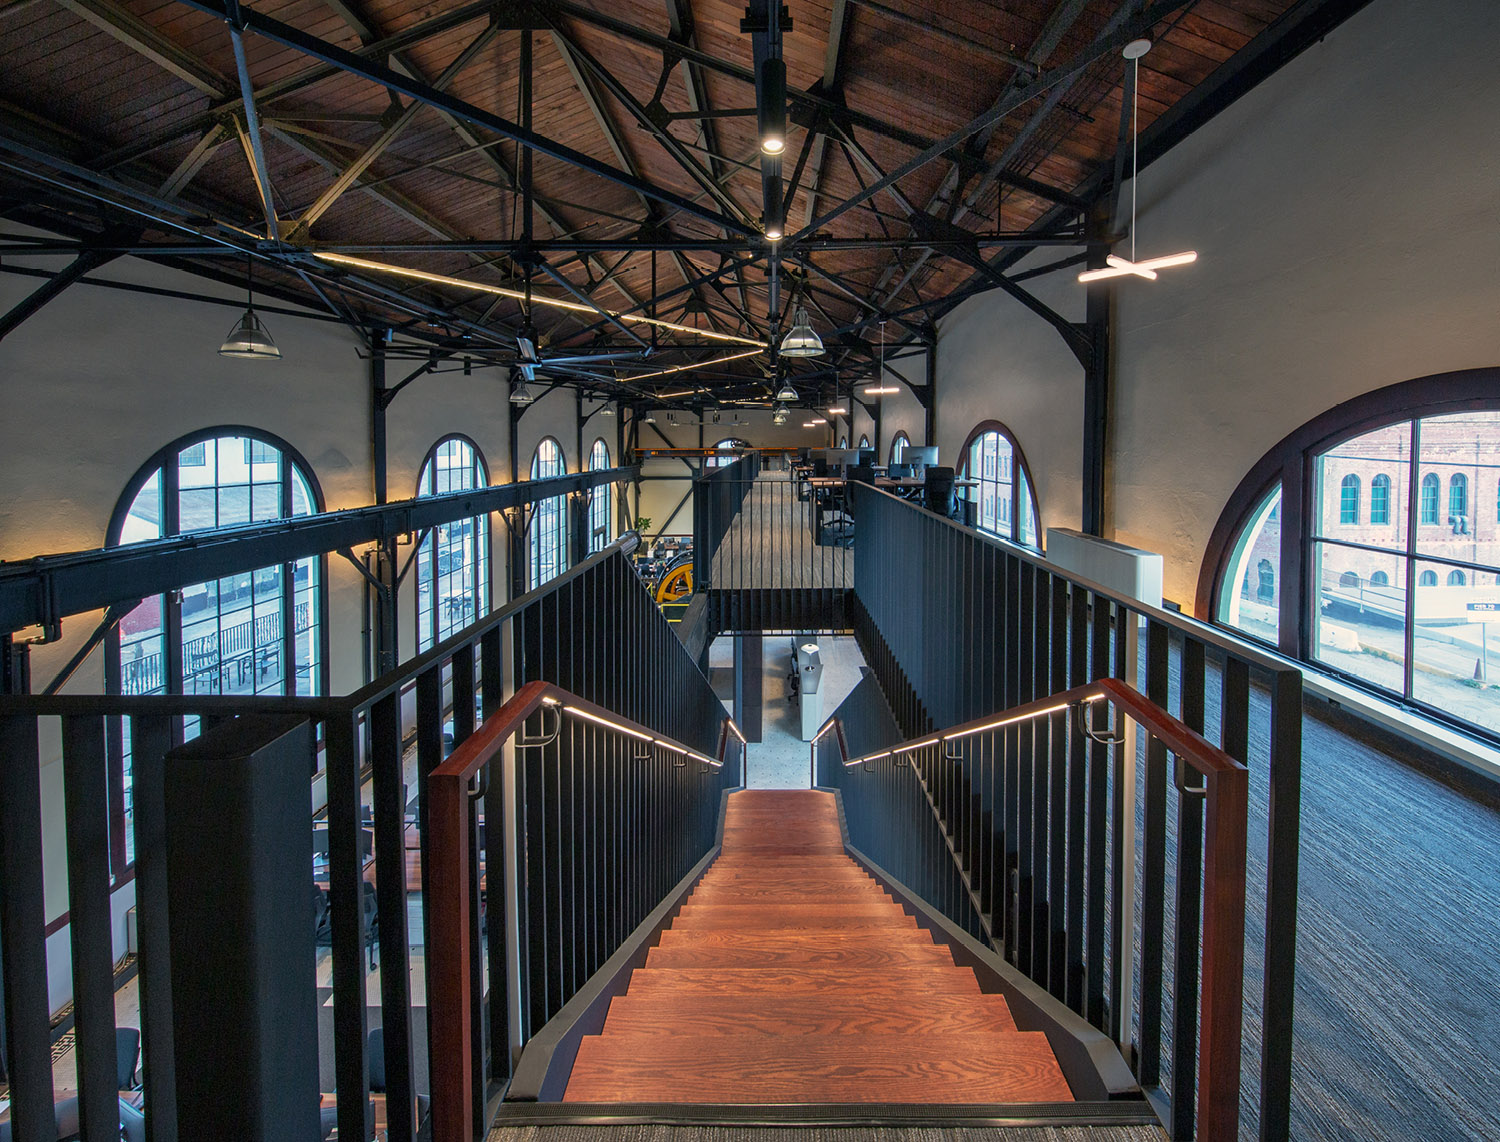 A new mezzanine level is constructed along the south and the west sides of the structure, providing an overview of the main level. The mezzanine structure and the stairs leading to it are the most signific Billy Hustace